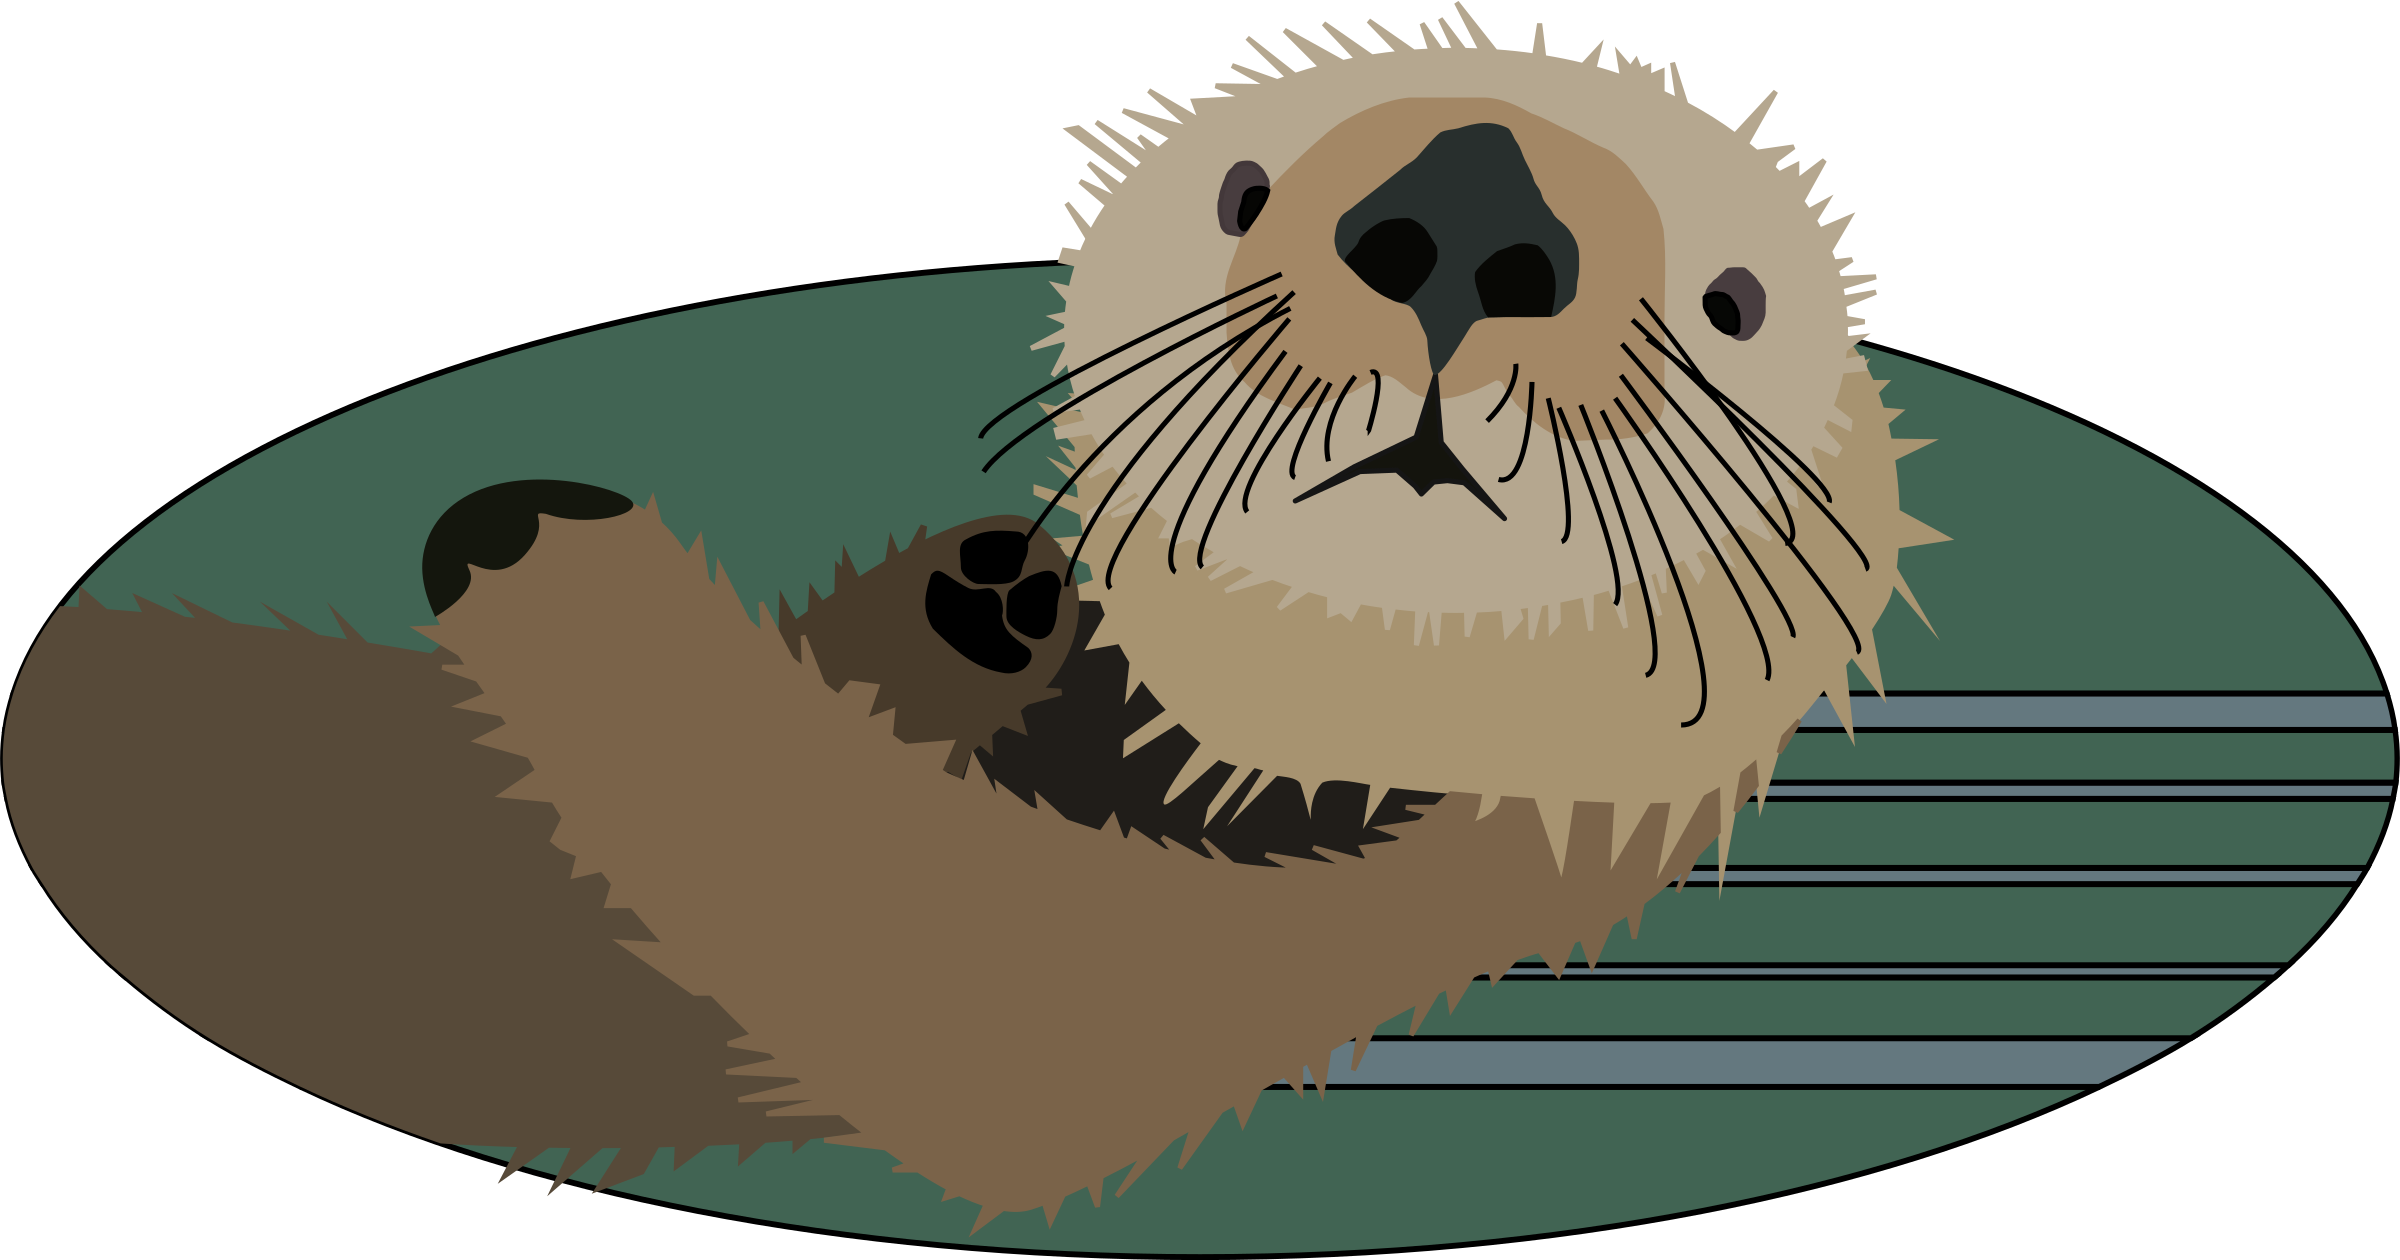 svg library download Sea icons png free. Groundhog clipart otter